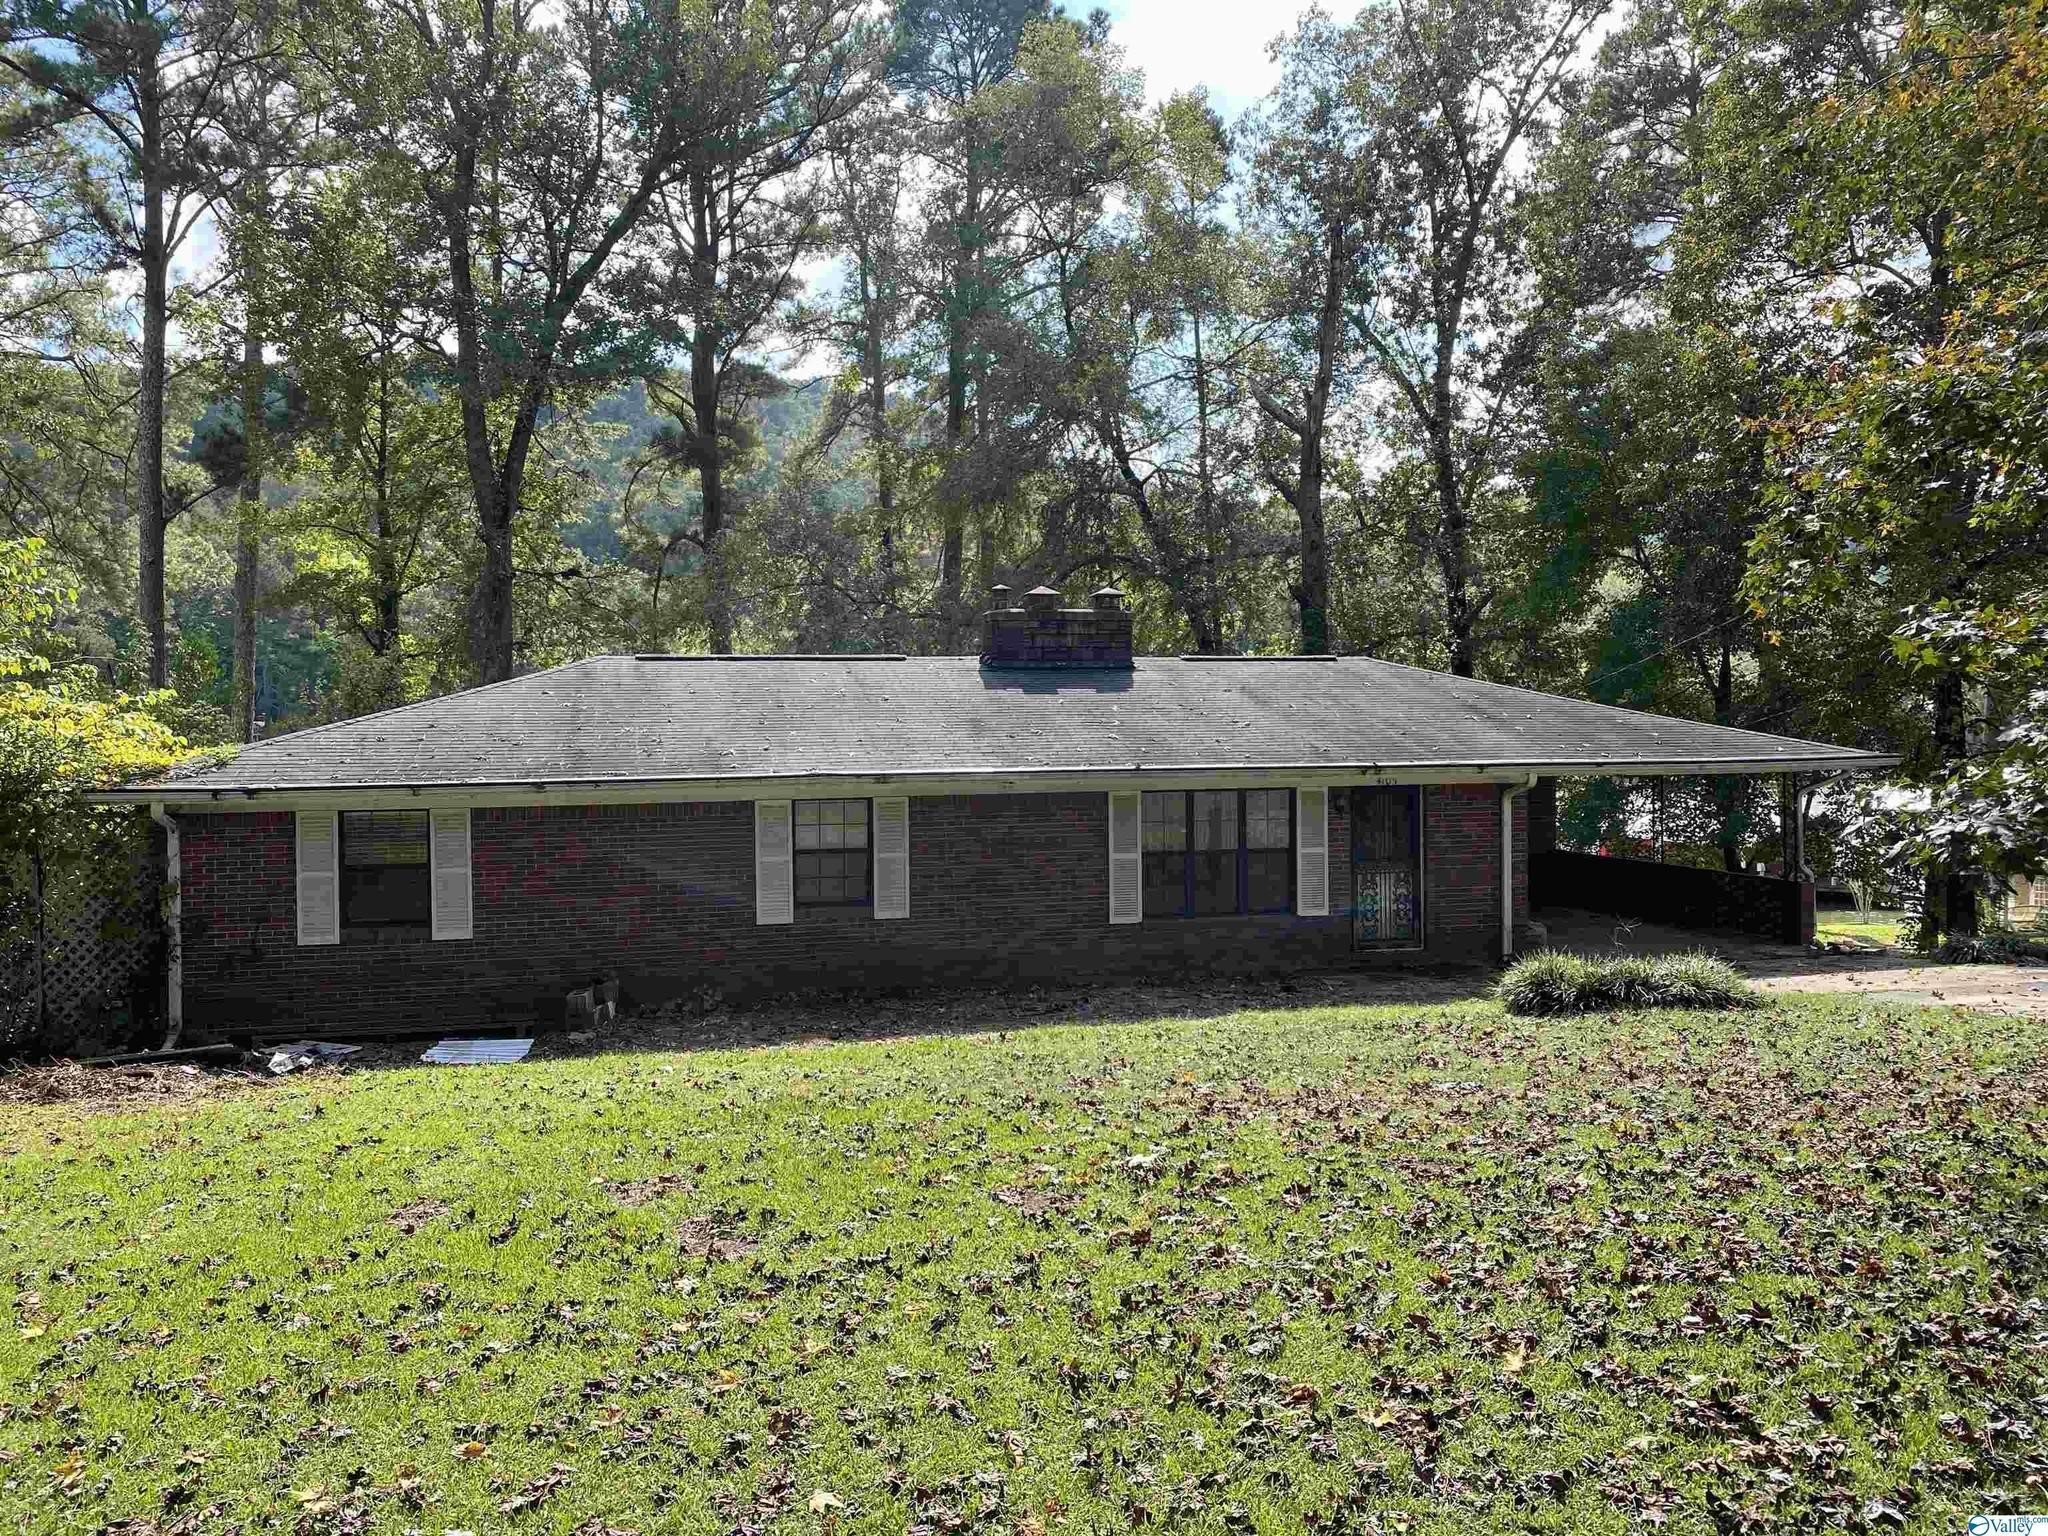 3-Bedroom House In Morrow Acres